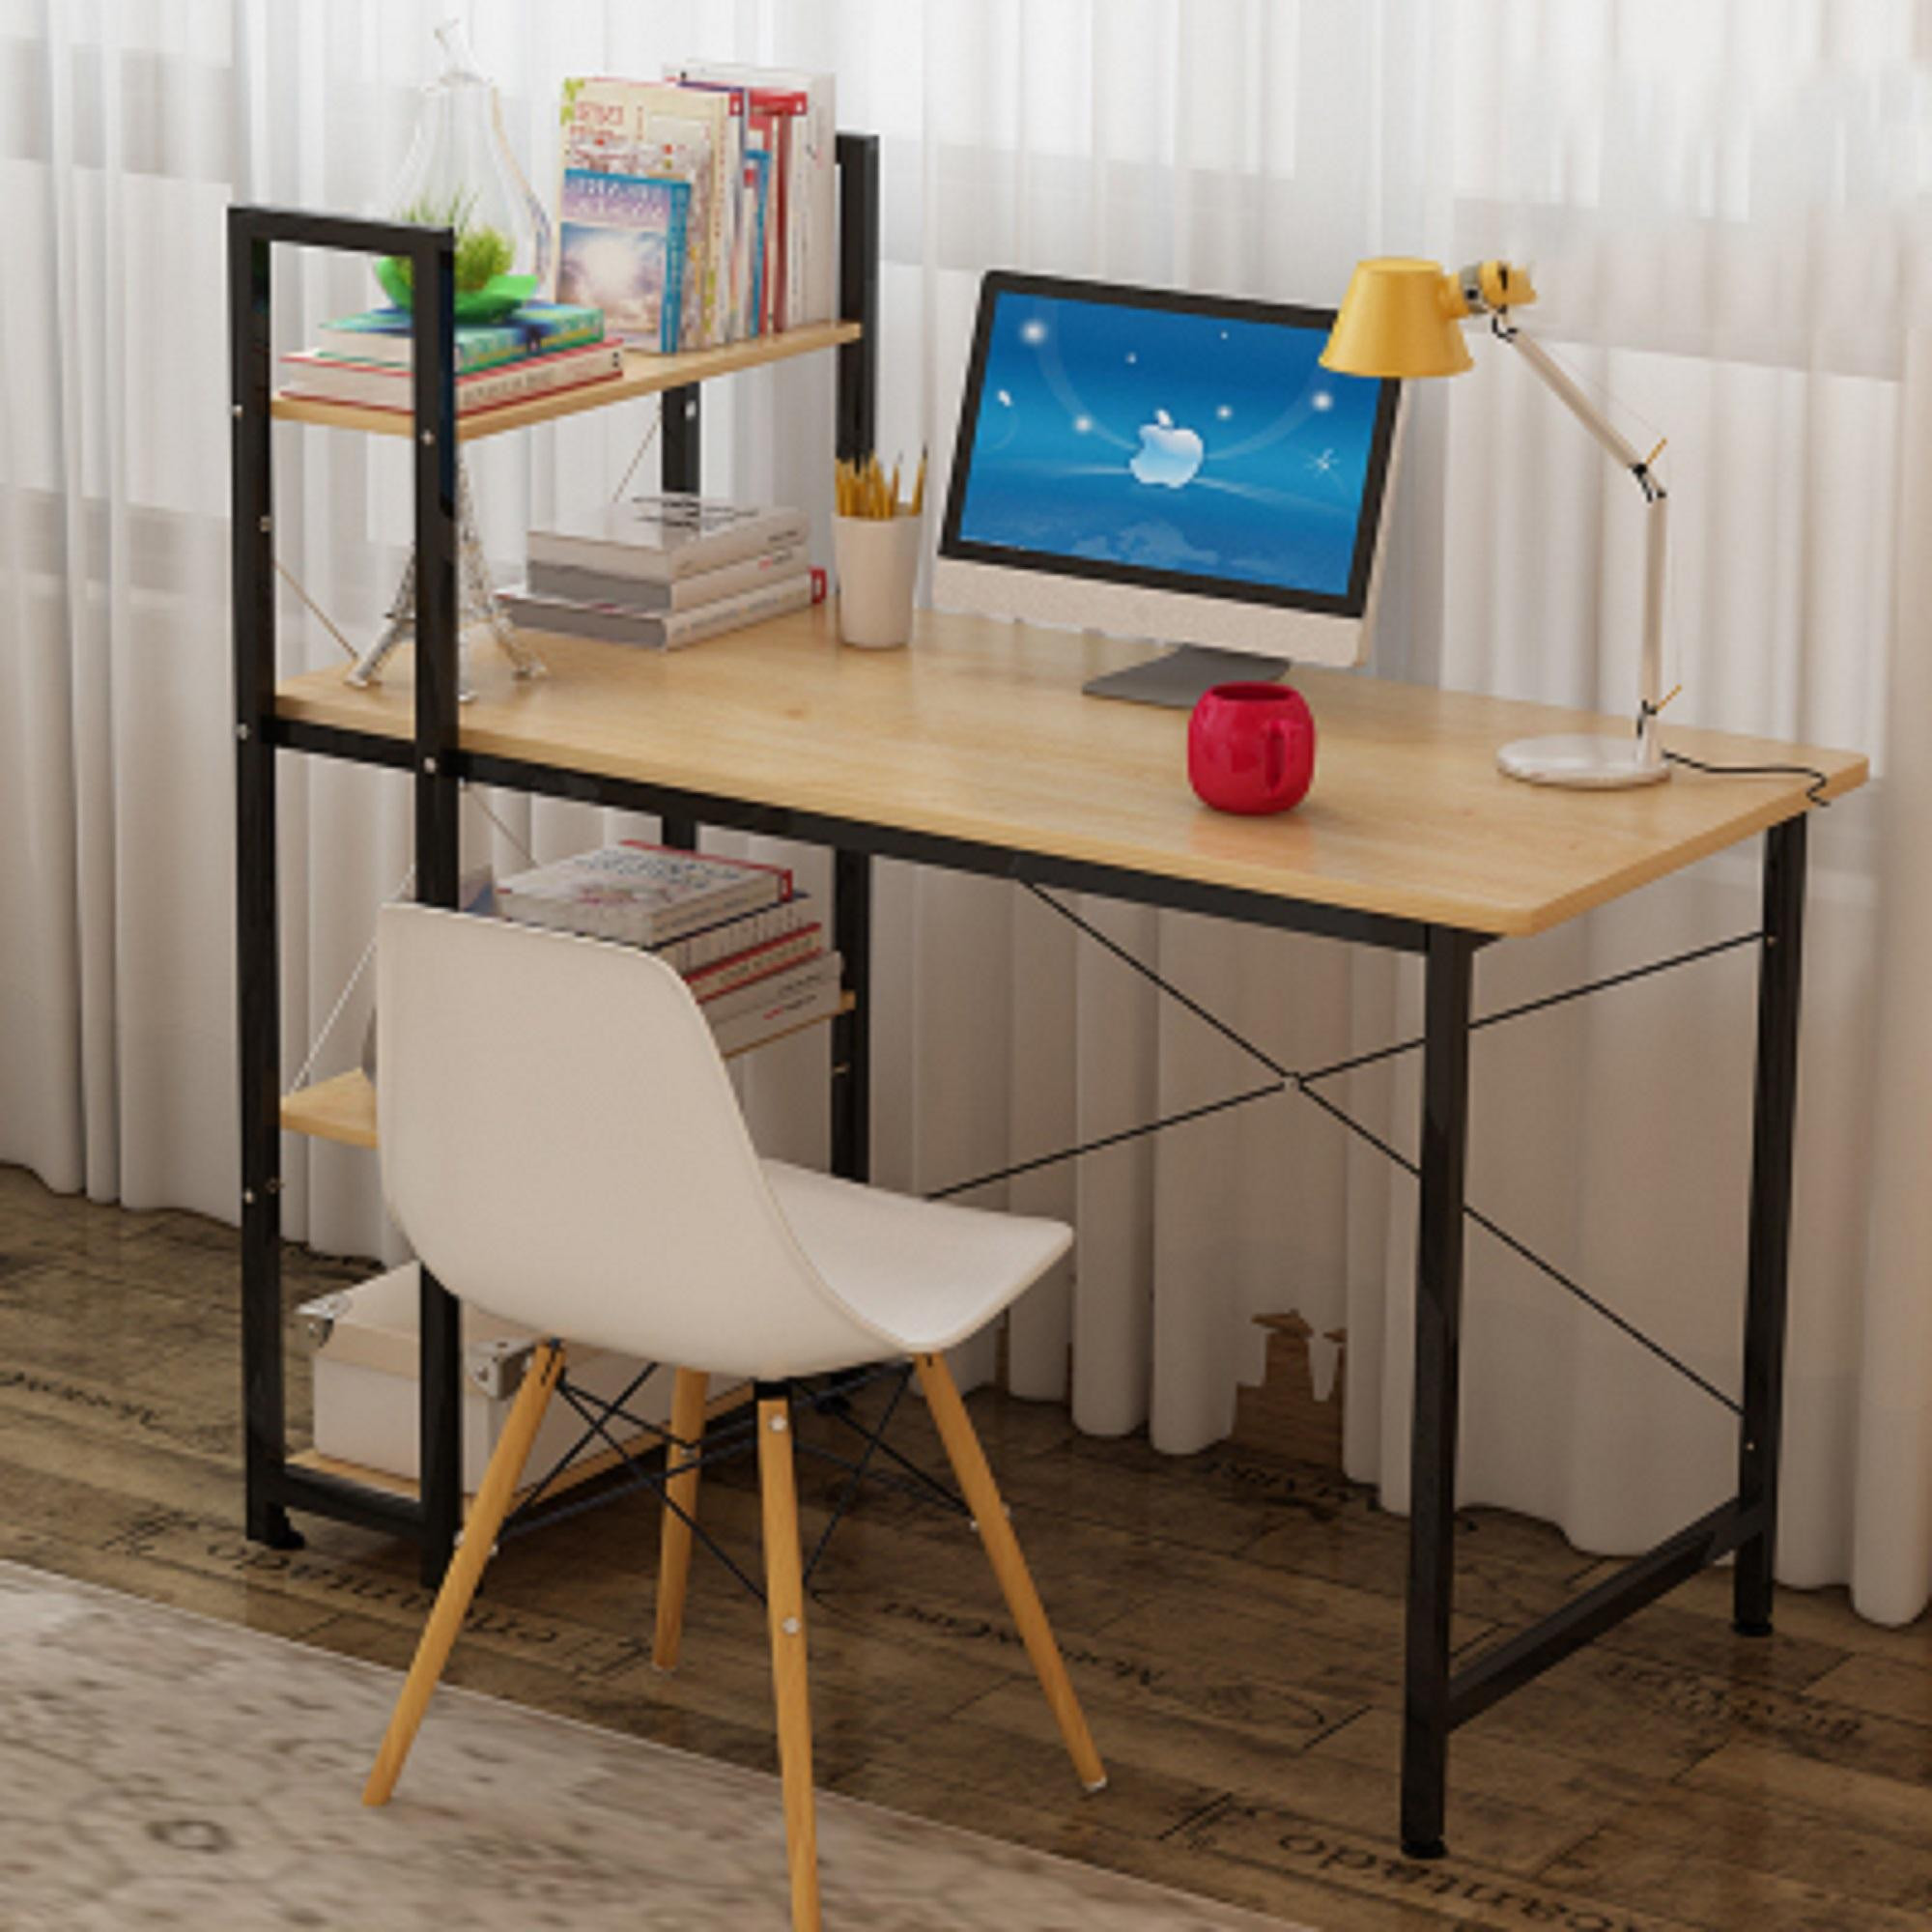 hardwood flooring price philippines of office table for sale office desk prices brands review in for philippines clifton tb 60yp yellow pear 120x60cm computer desk table